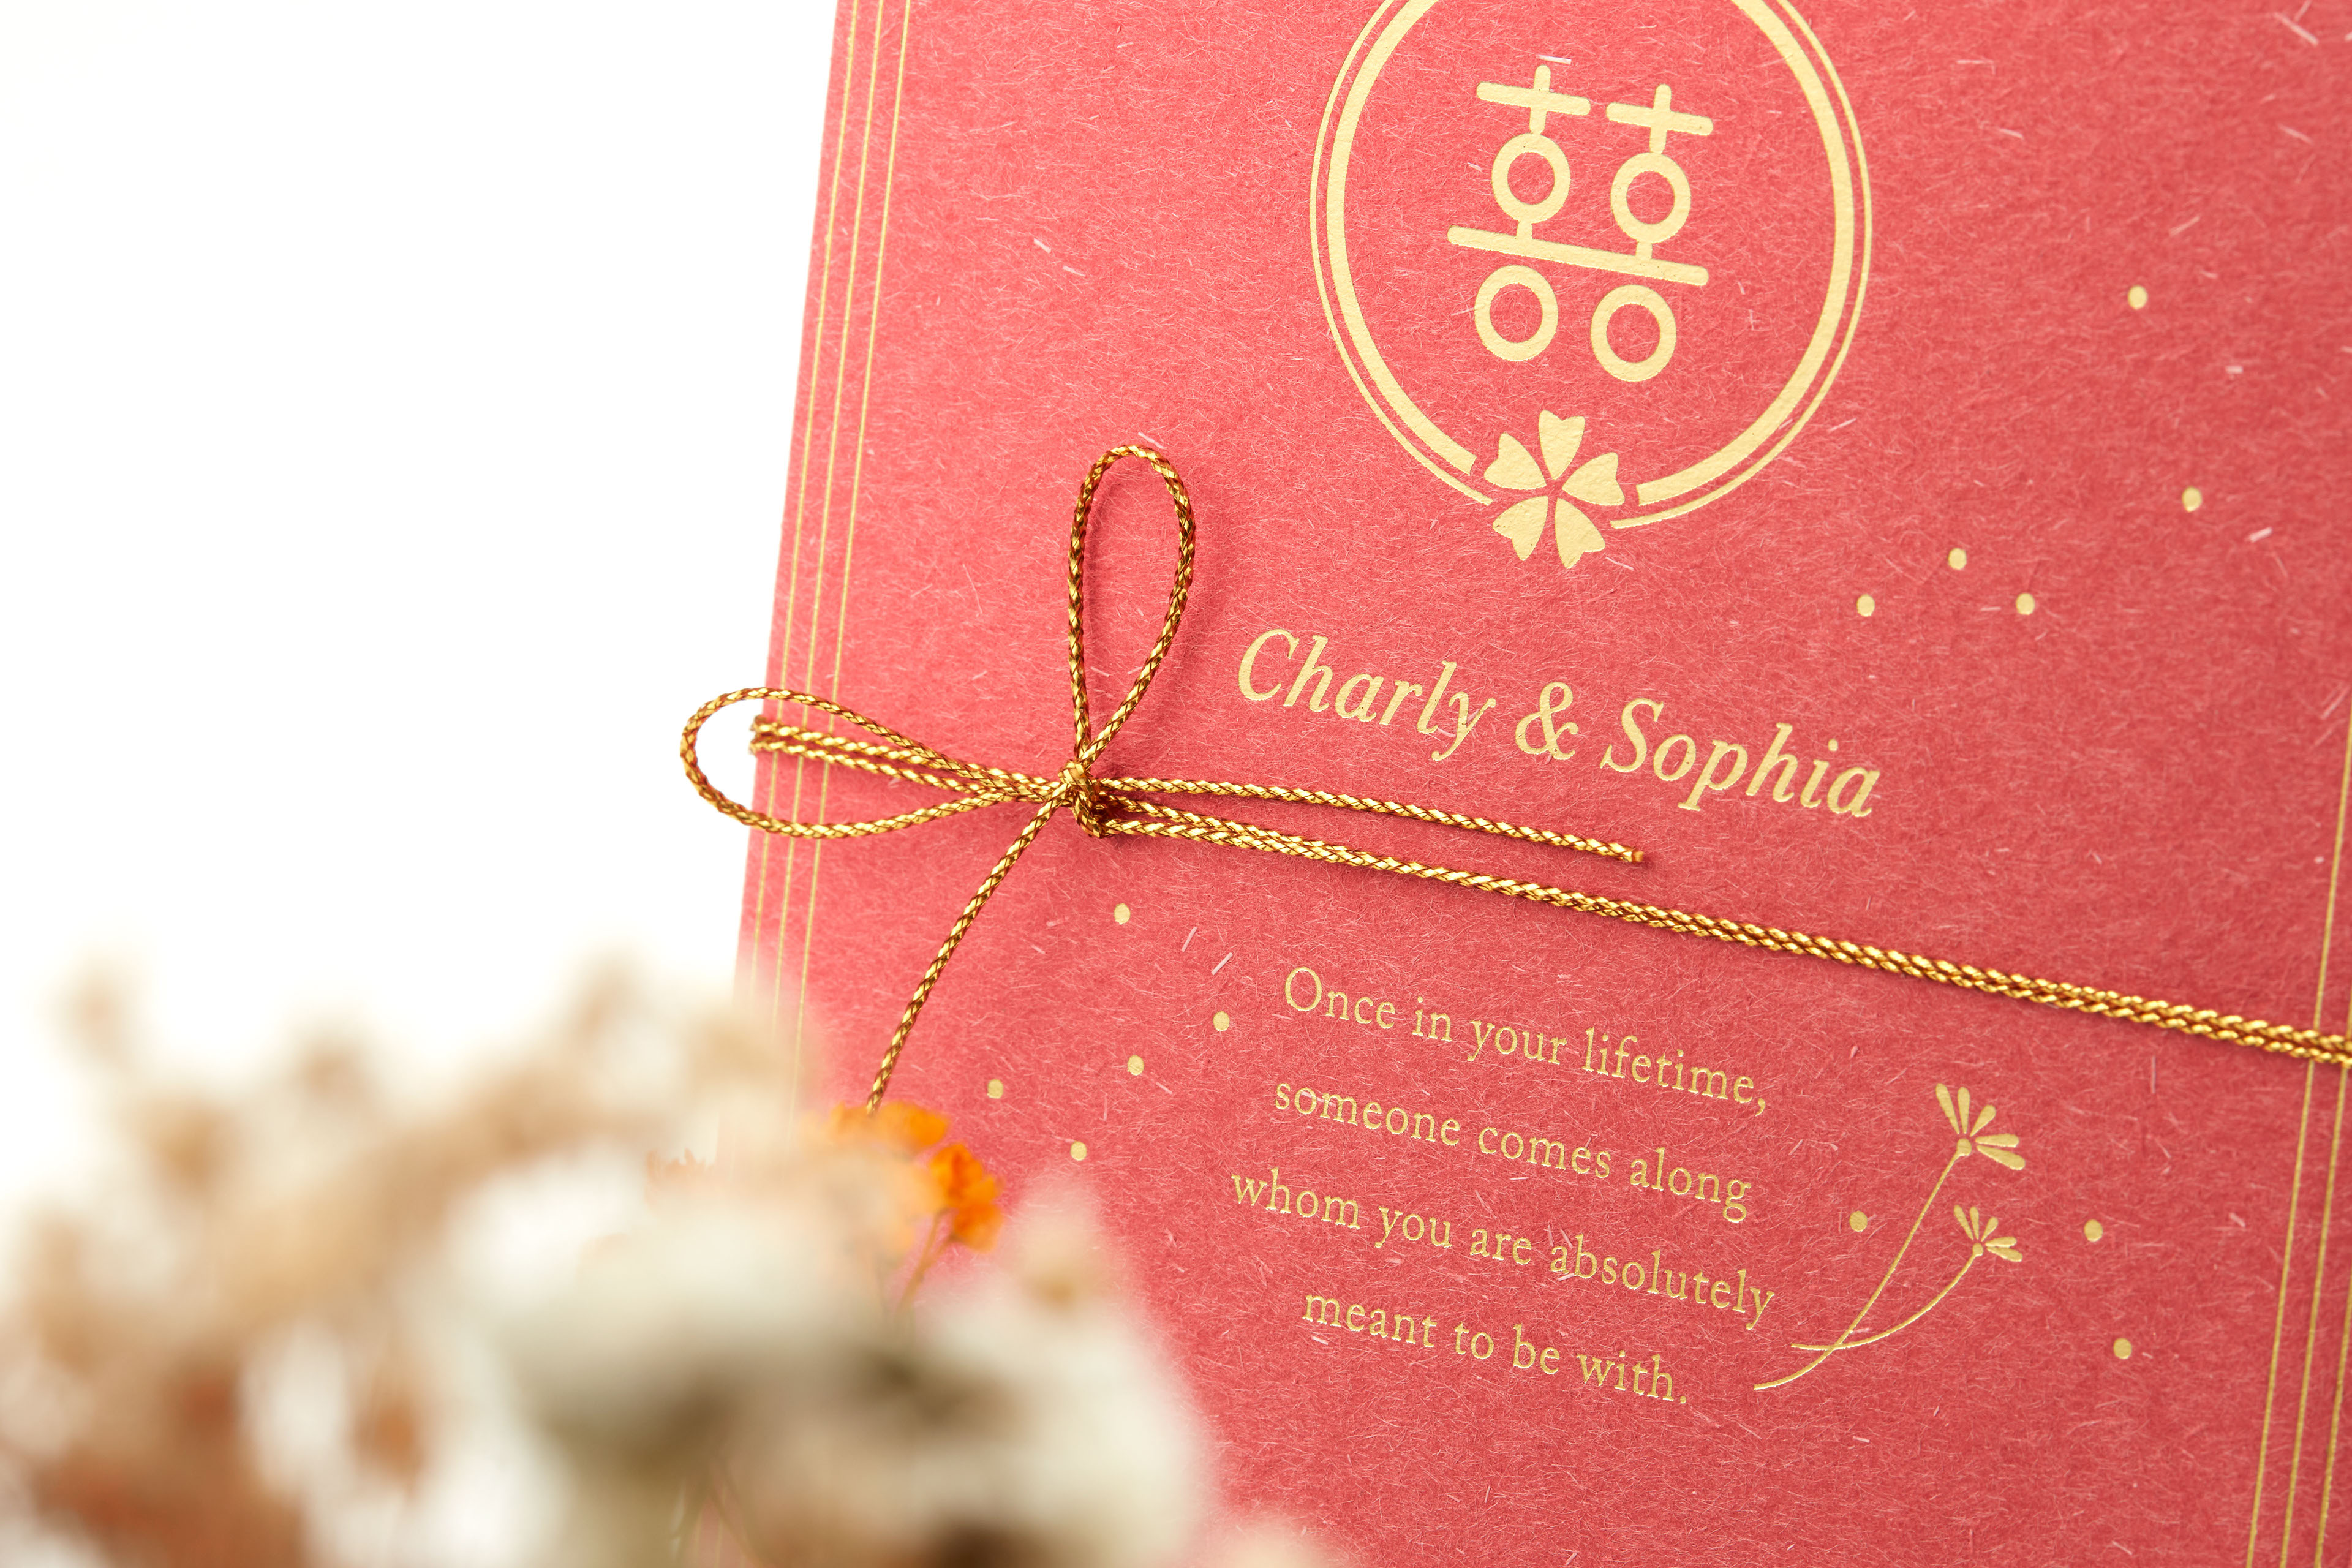 Charly&Sophia Wedding Card on Behance